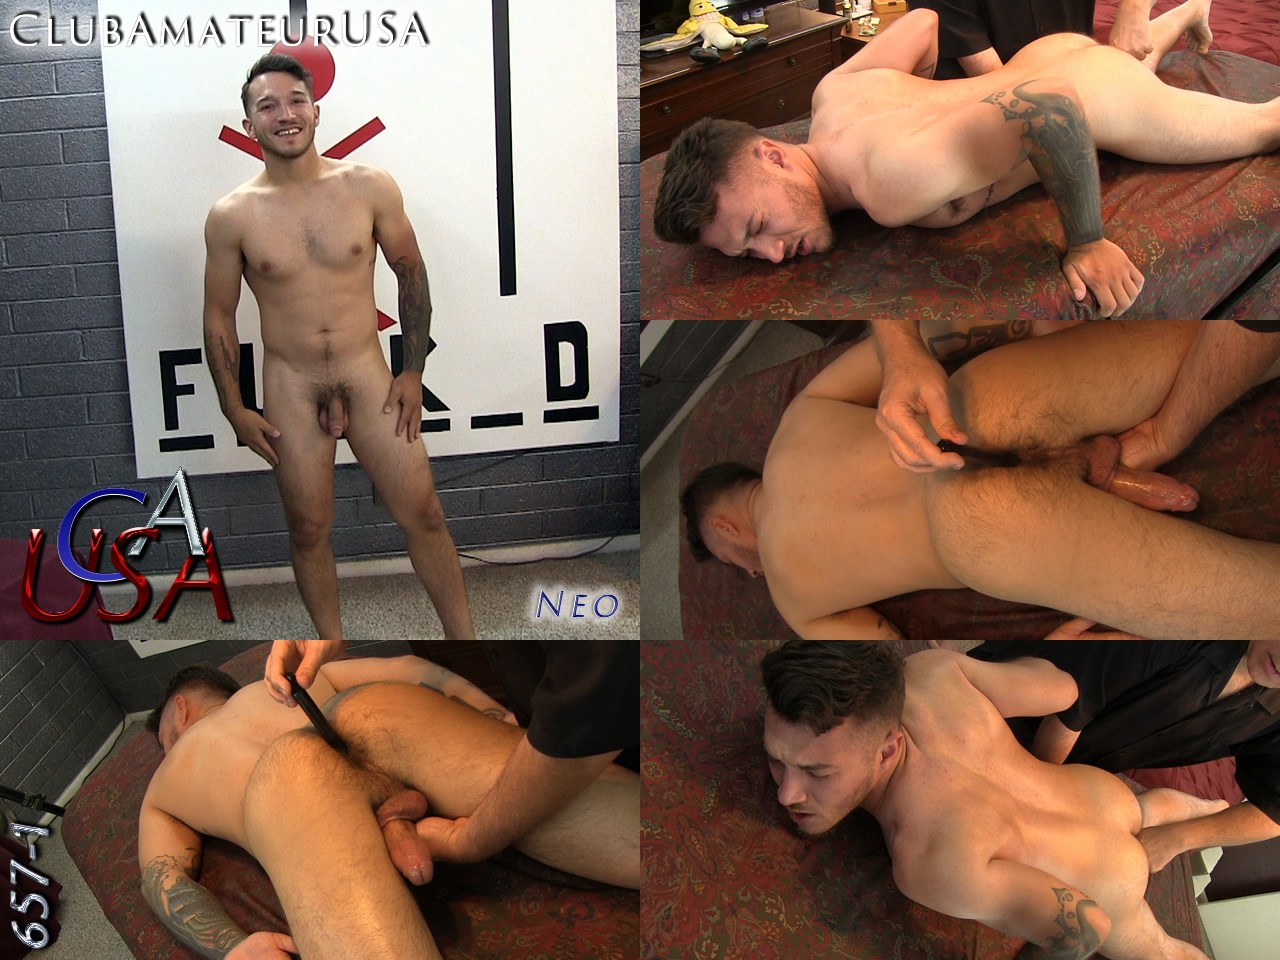 Download or Stream CAUSA 657 Neo - 1 of 3 - Click Here Now